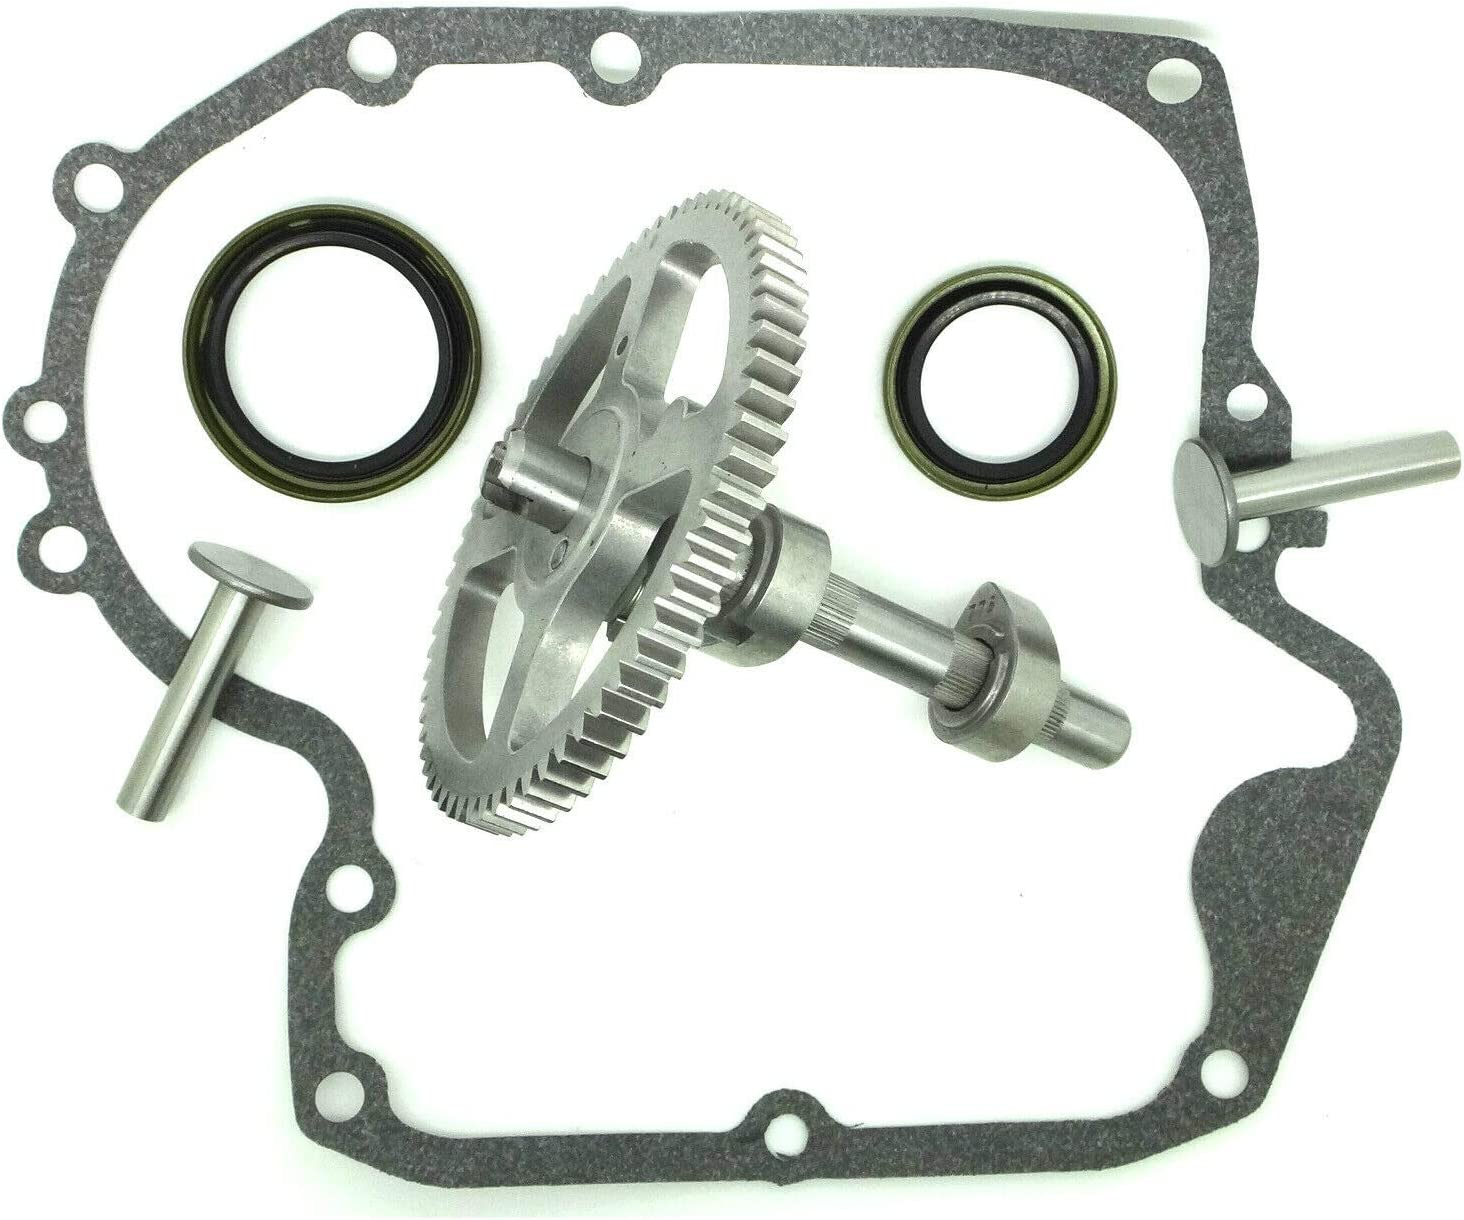 792681 791942 Camshaft With Gasket and Oil Seal For Briggs /& Stratton 793880 Replaces # 793583 795102